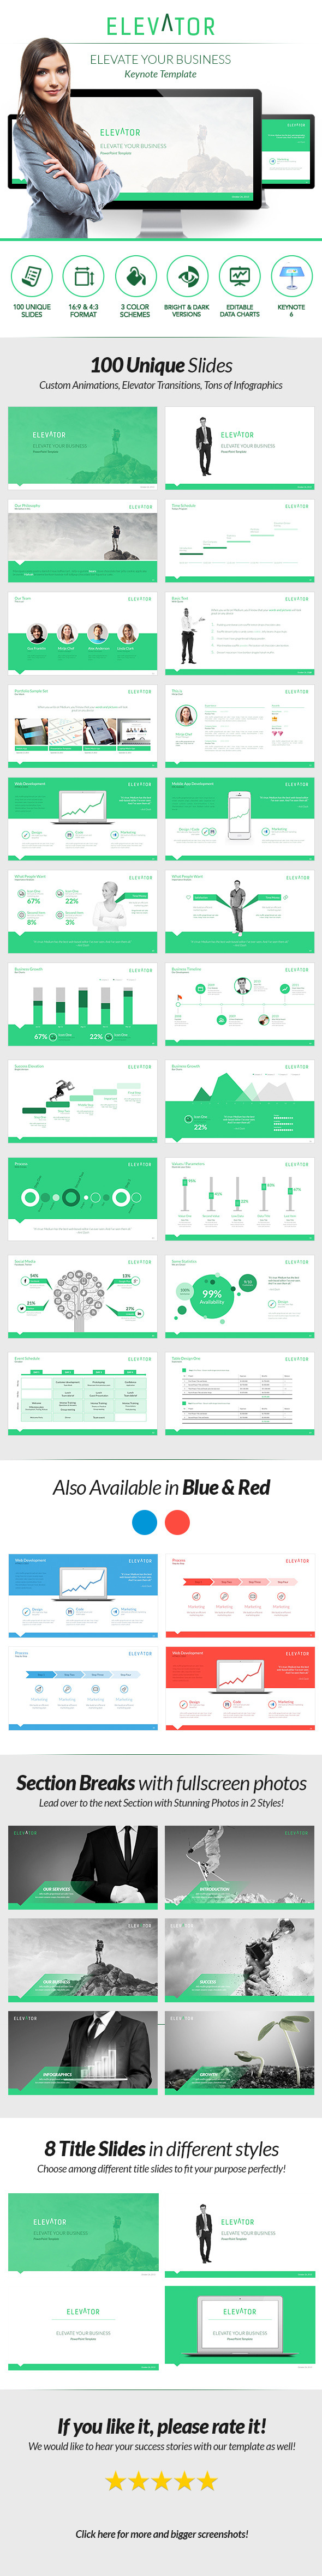 Elevator Keynote - Elevate Your Business - Keynote Templates Presentation Templates